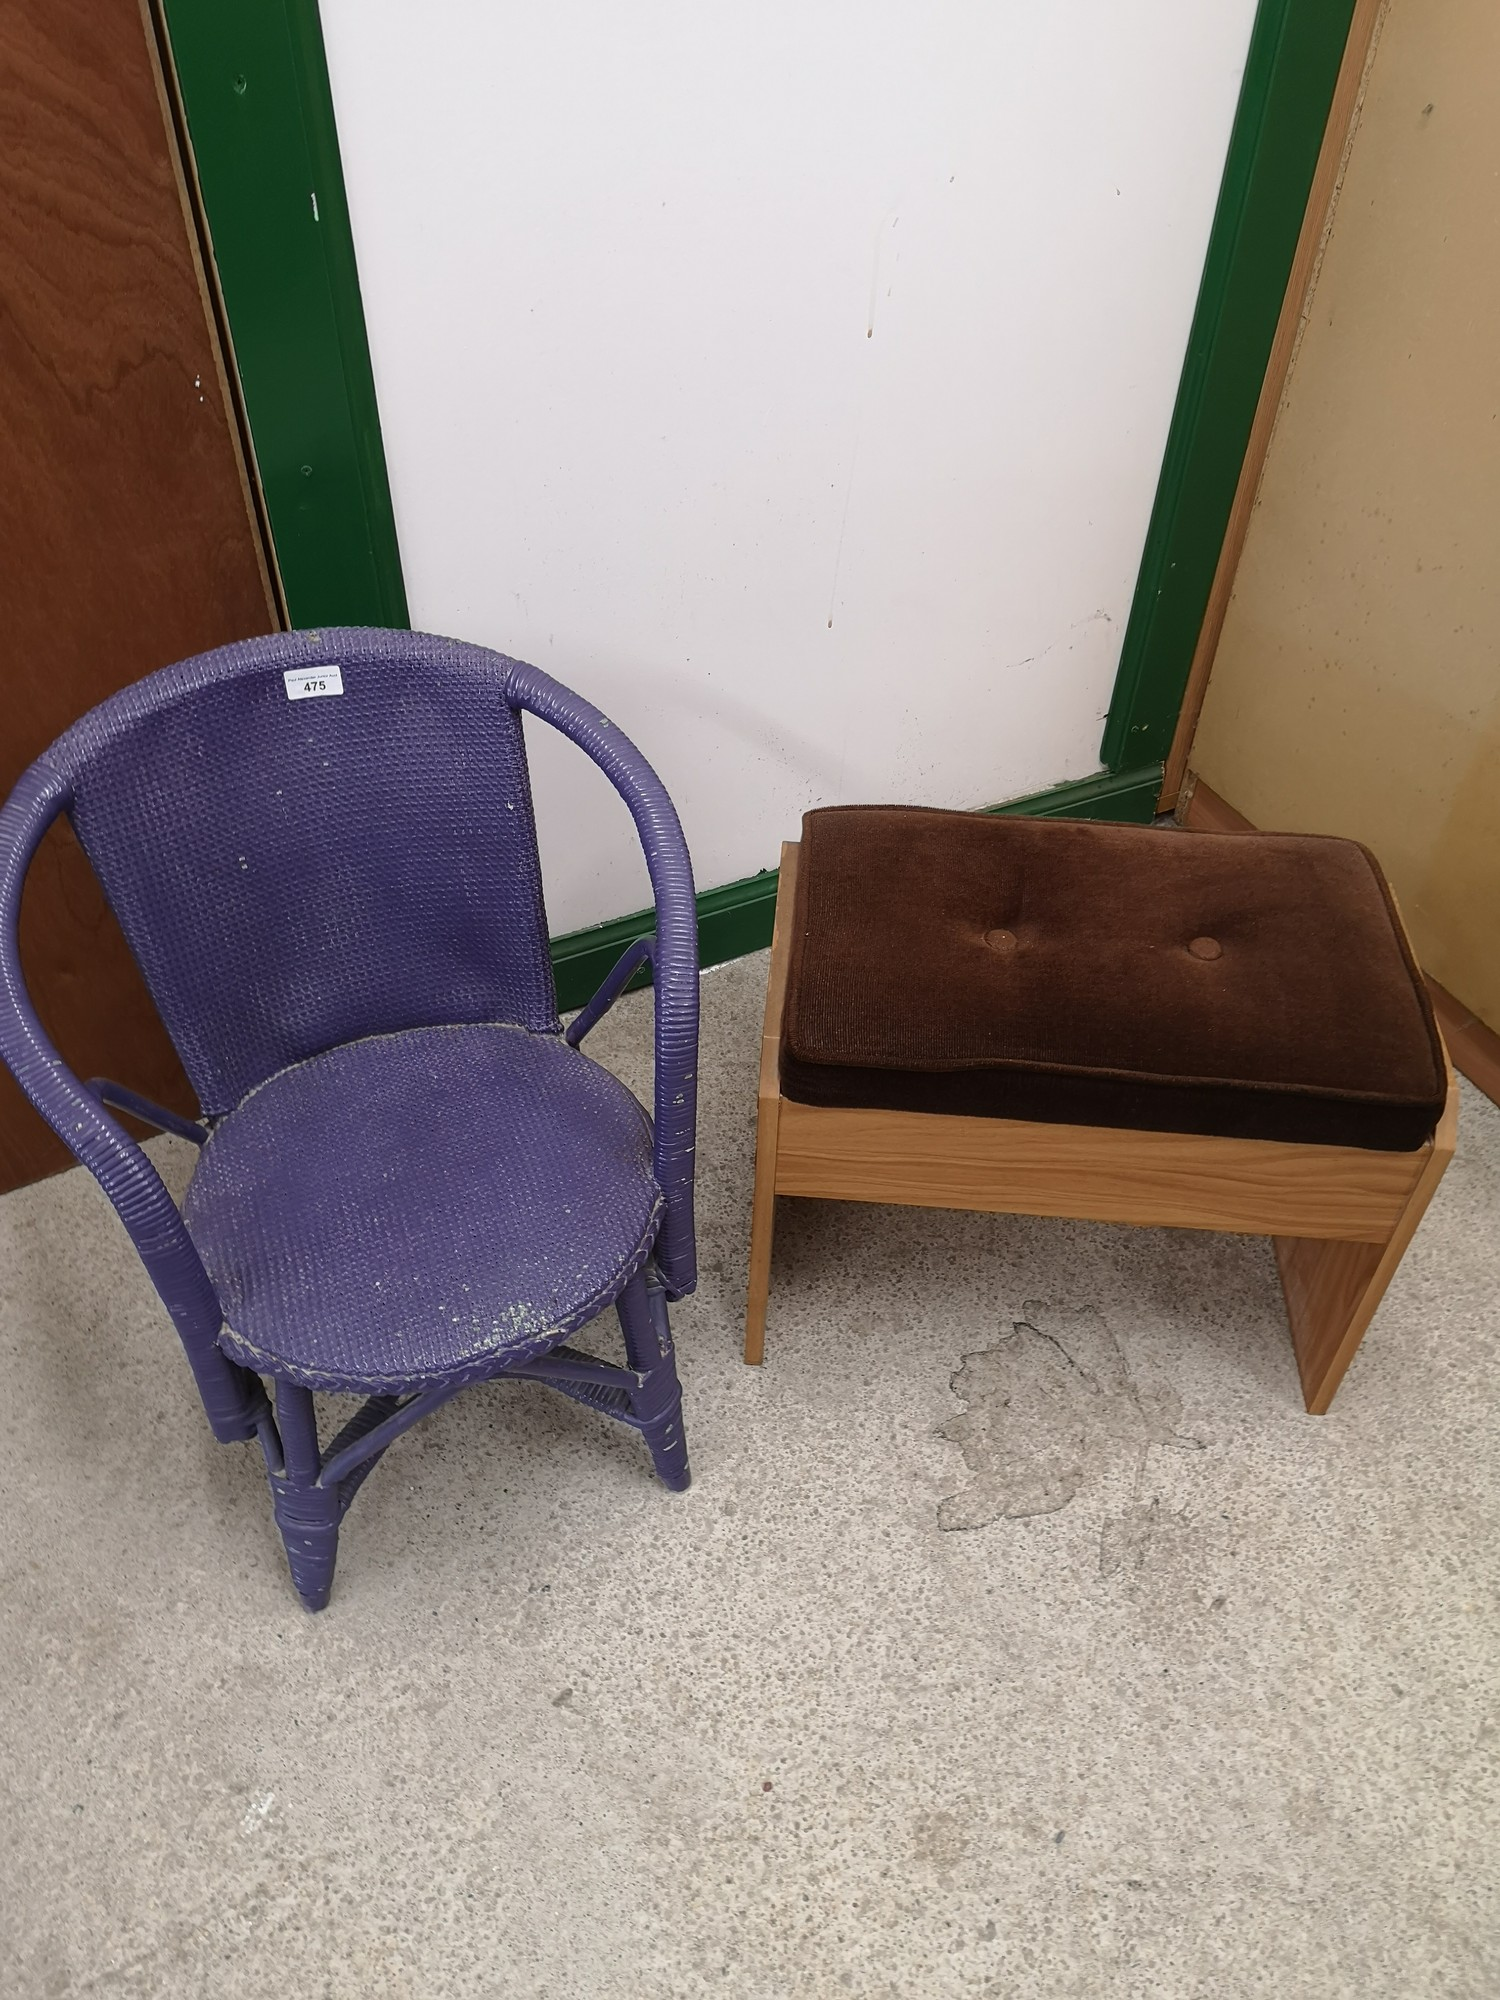 Small contempory stool together with purple wicker chair.